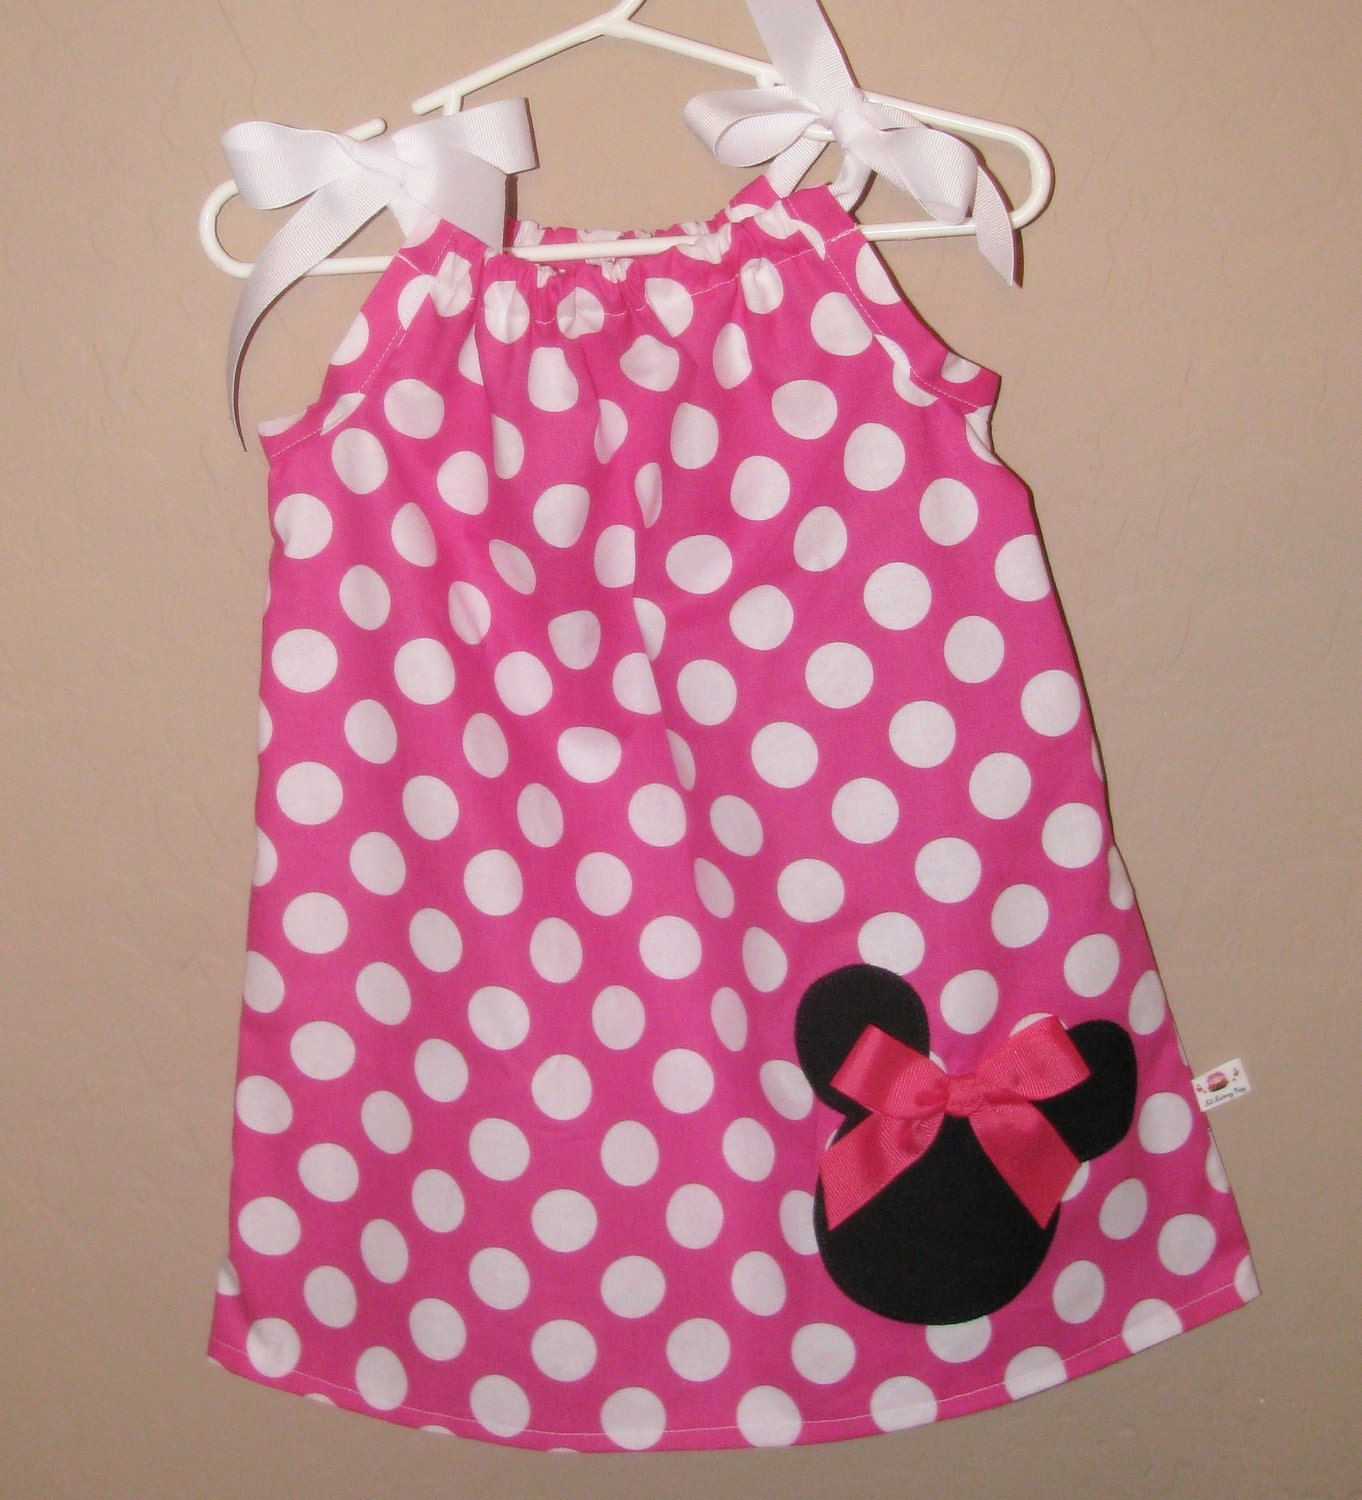 Disney Minnie Mouse Inspired Baby Toddler Dress Pink White